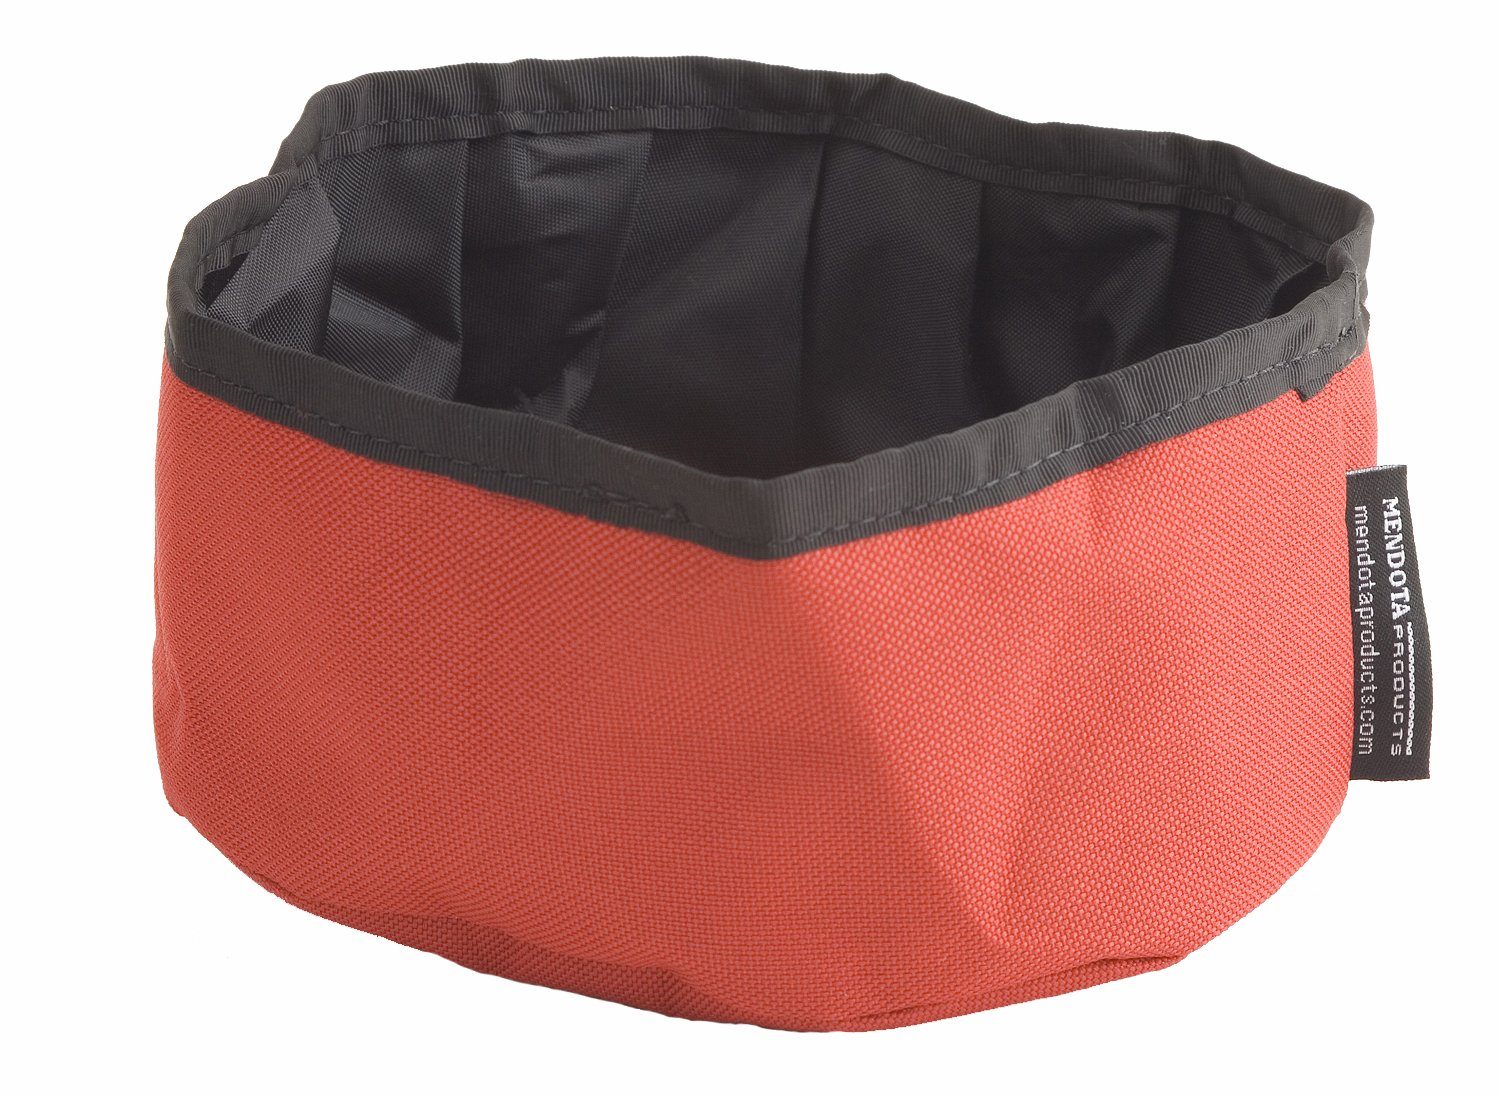 Mendota Products 7604 Collapsible Dog Bowl, Green, 48-Ounce ME07604